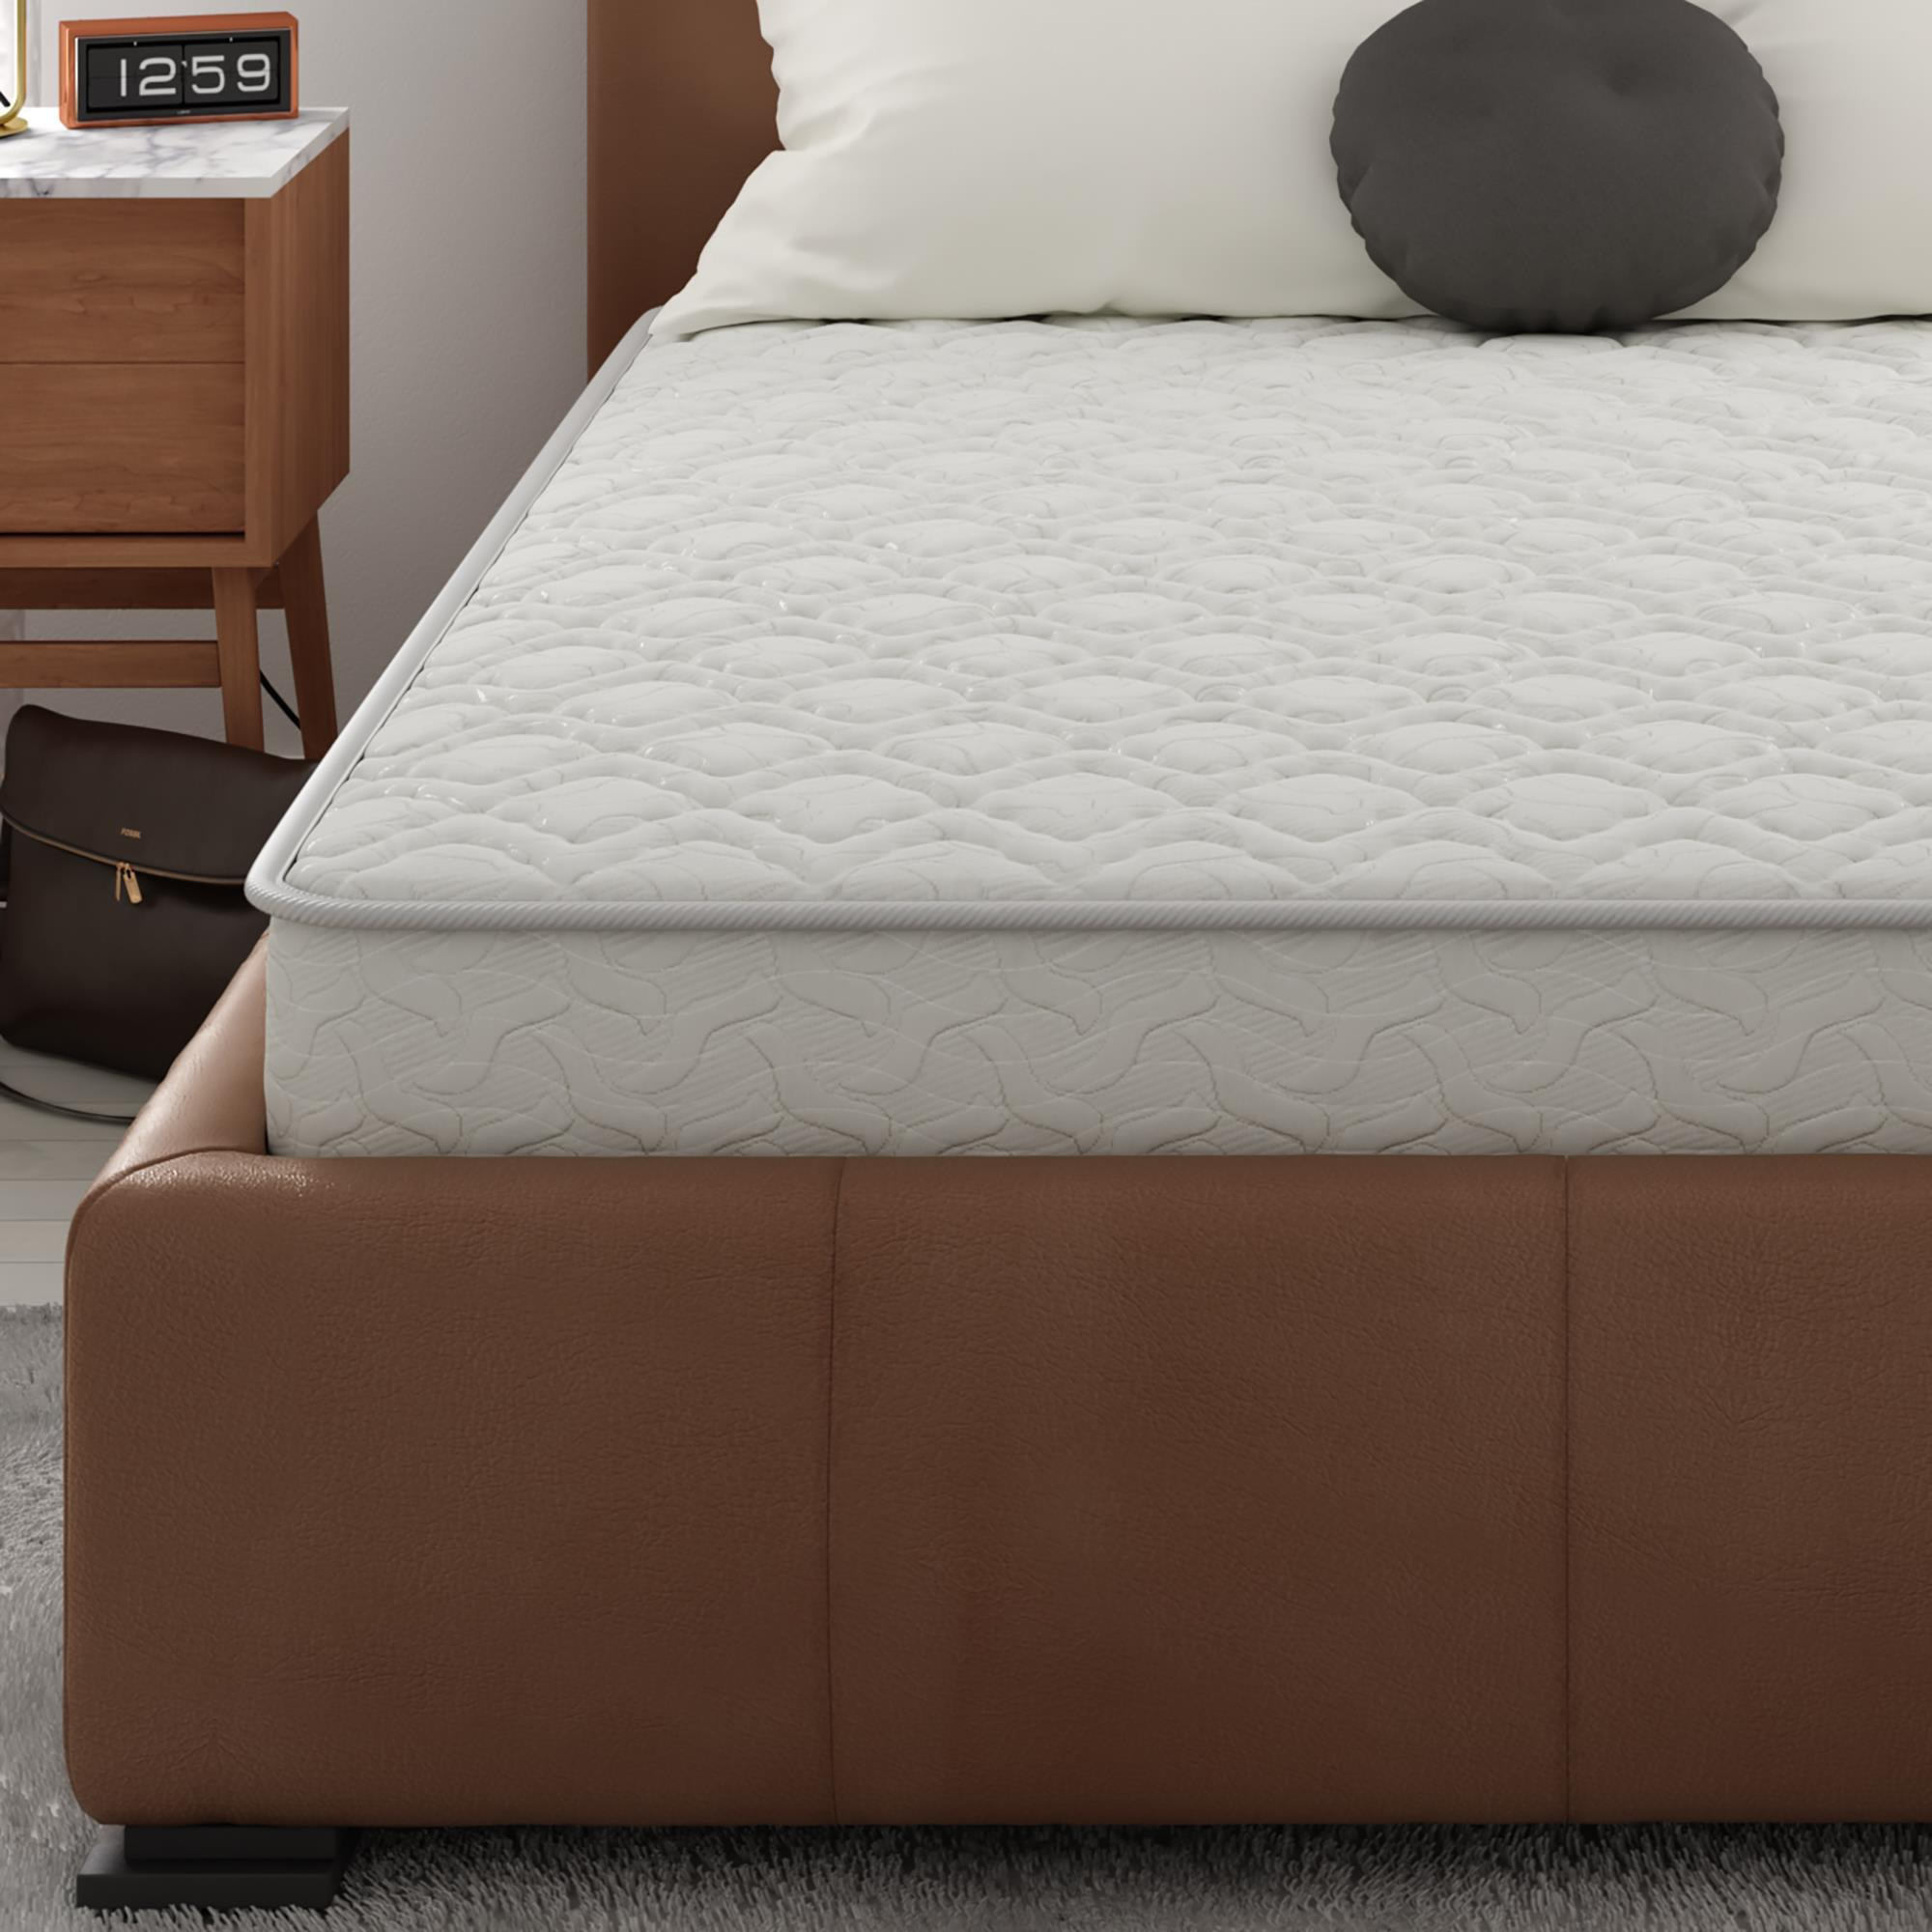 Signature Sleep Gold CertiPUR-US Triumph 8 inch Independently Encased Coil Mattress,... by Dorel Home Products